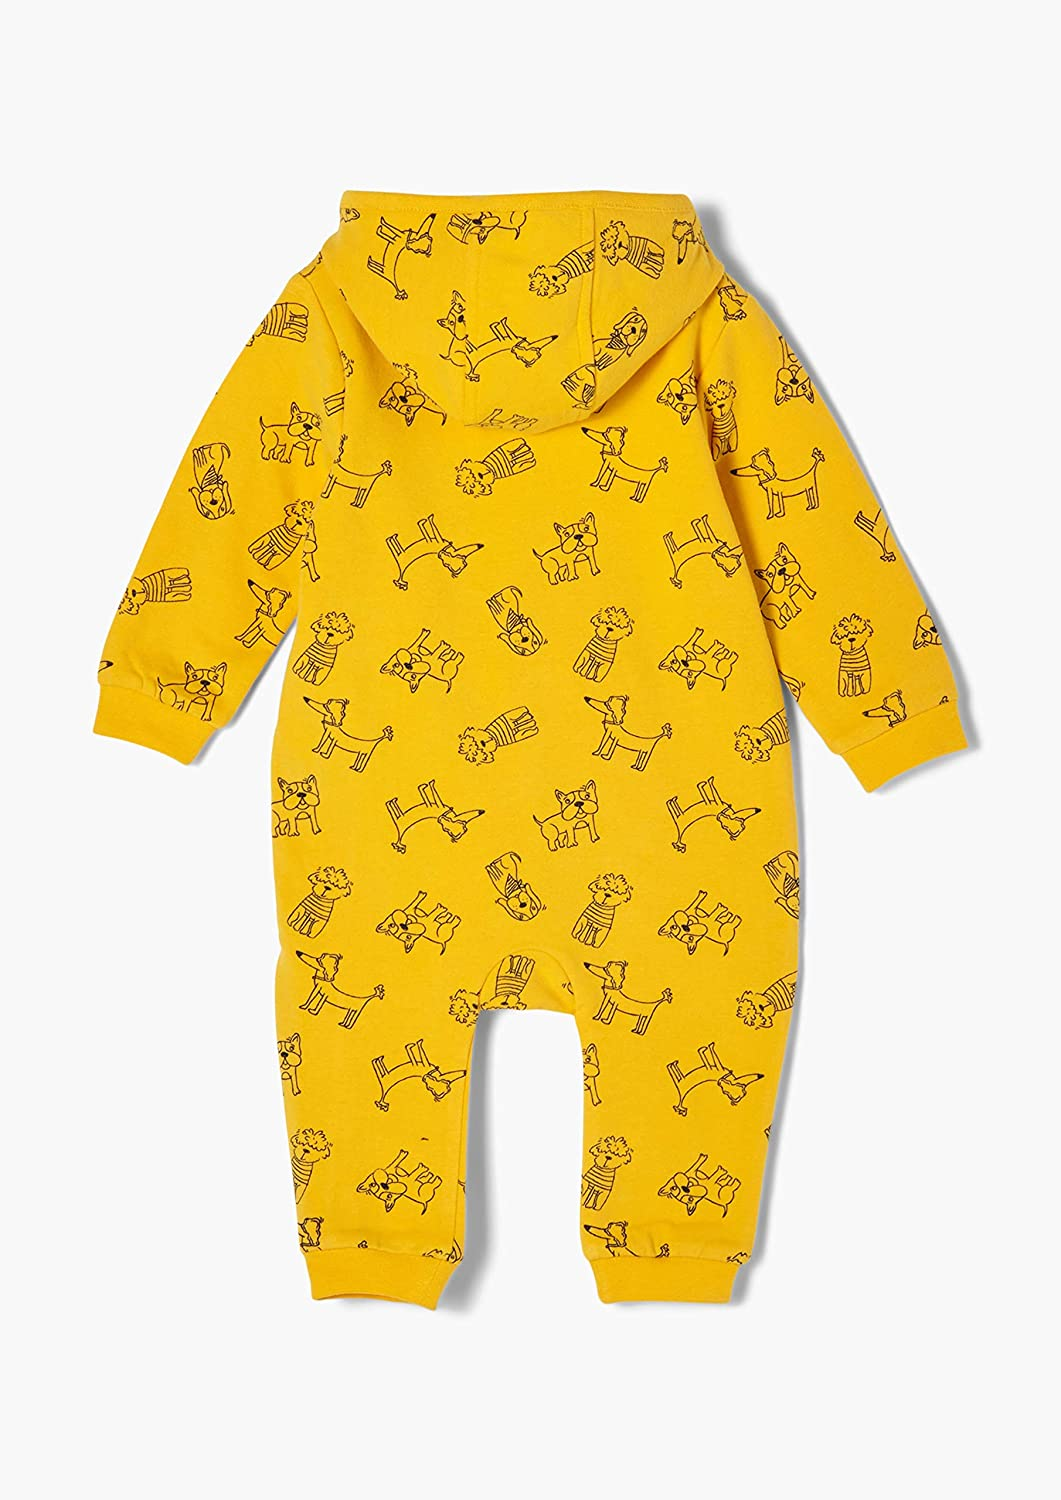 s.Oliver Unisex Baby Jersey-Overall mit Hunde-Motiven